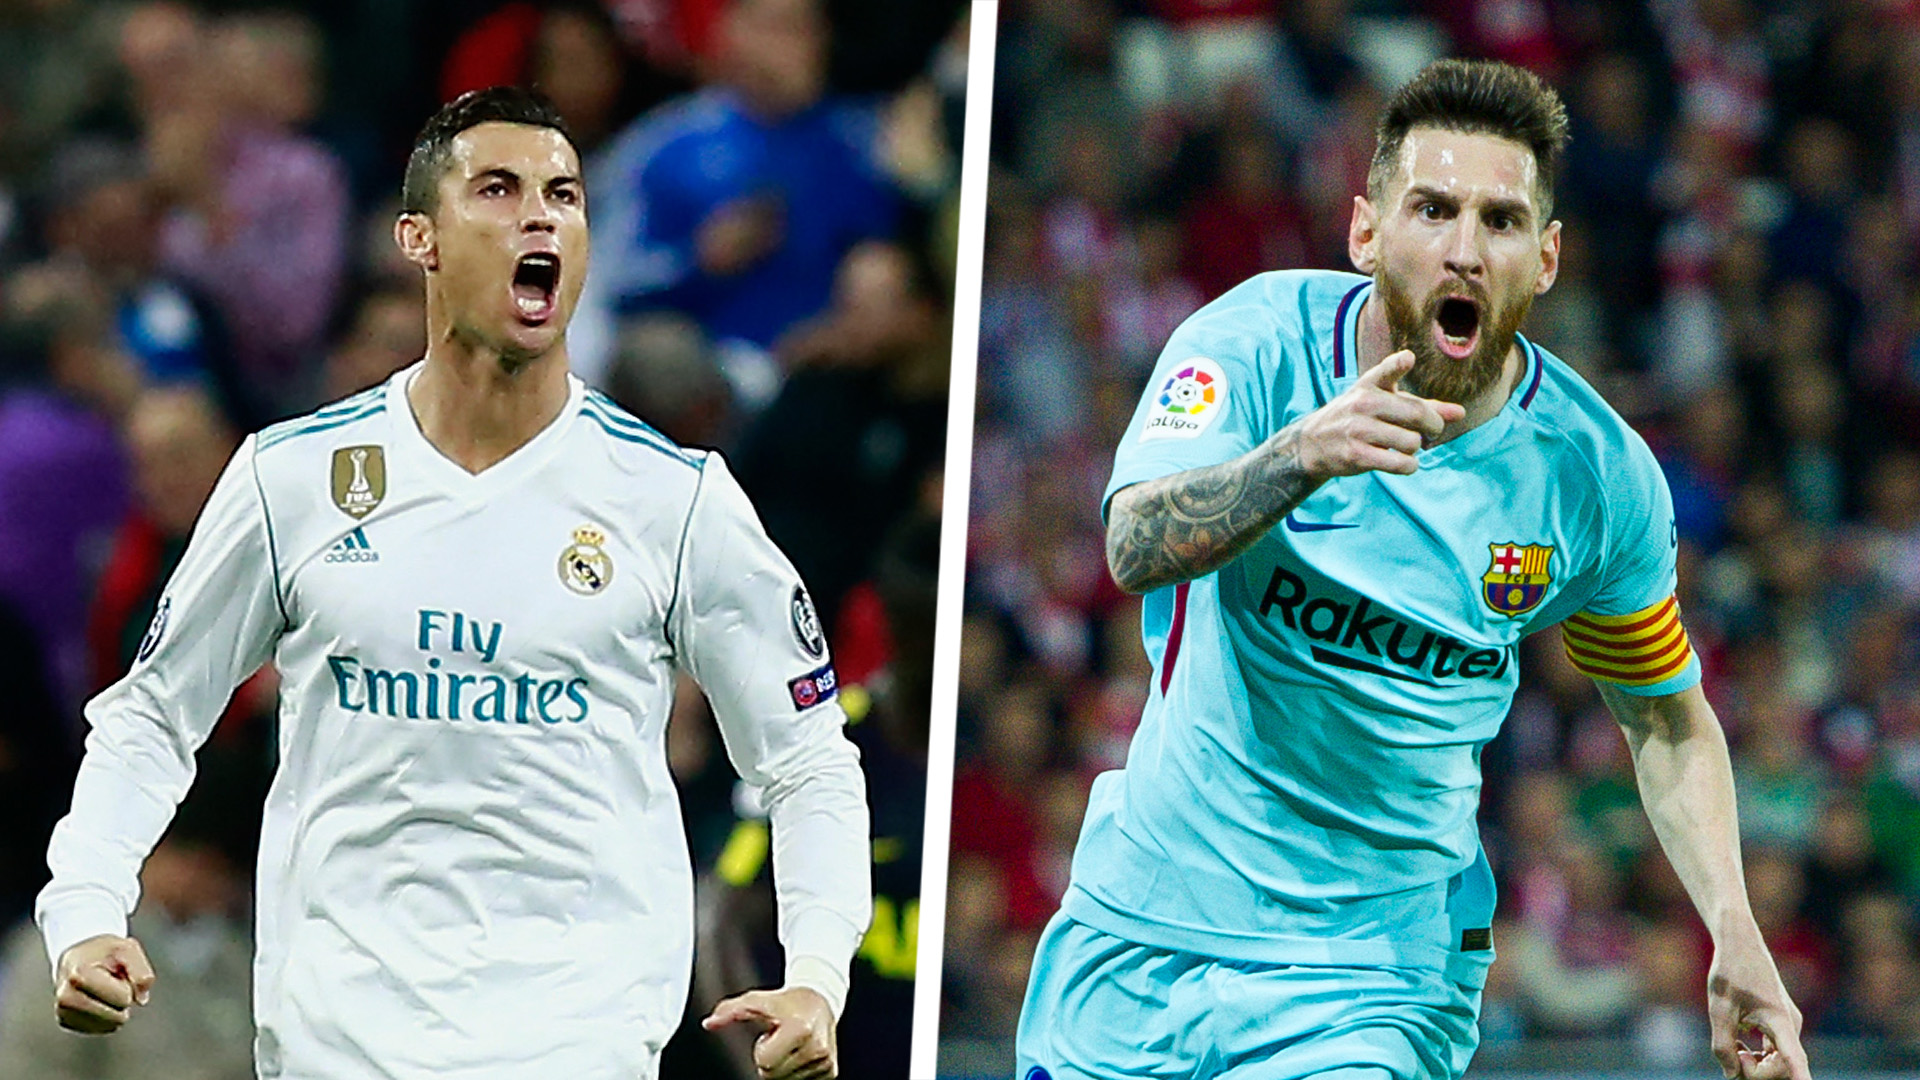 ronaldo vs messi the truth on who has the better stats